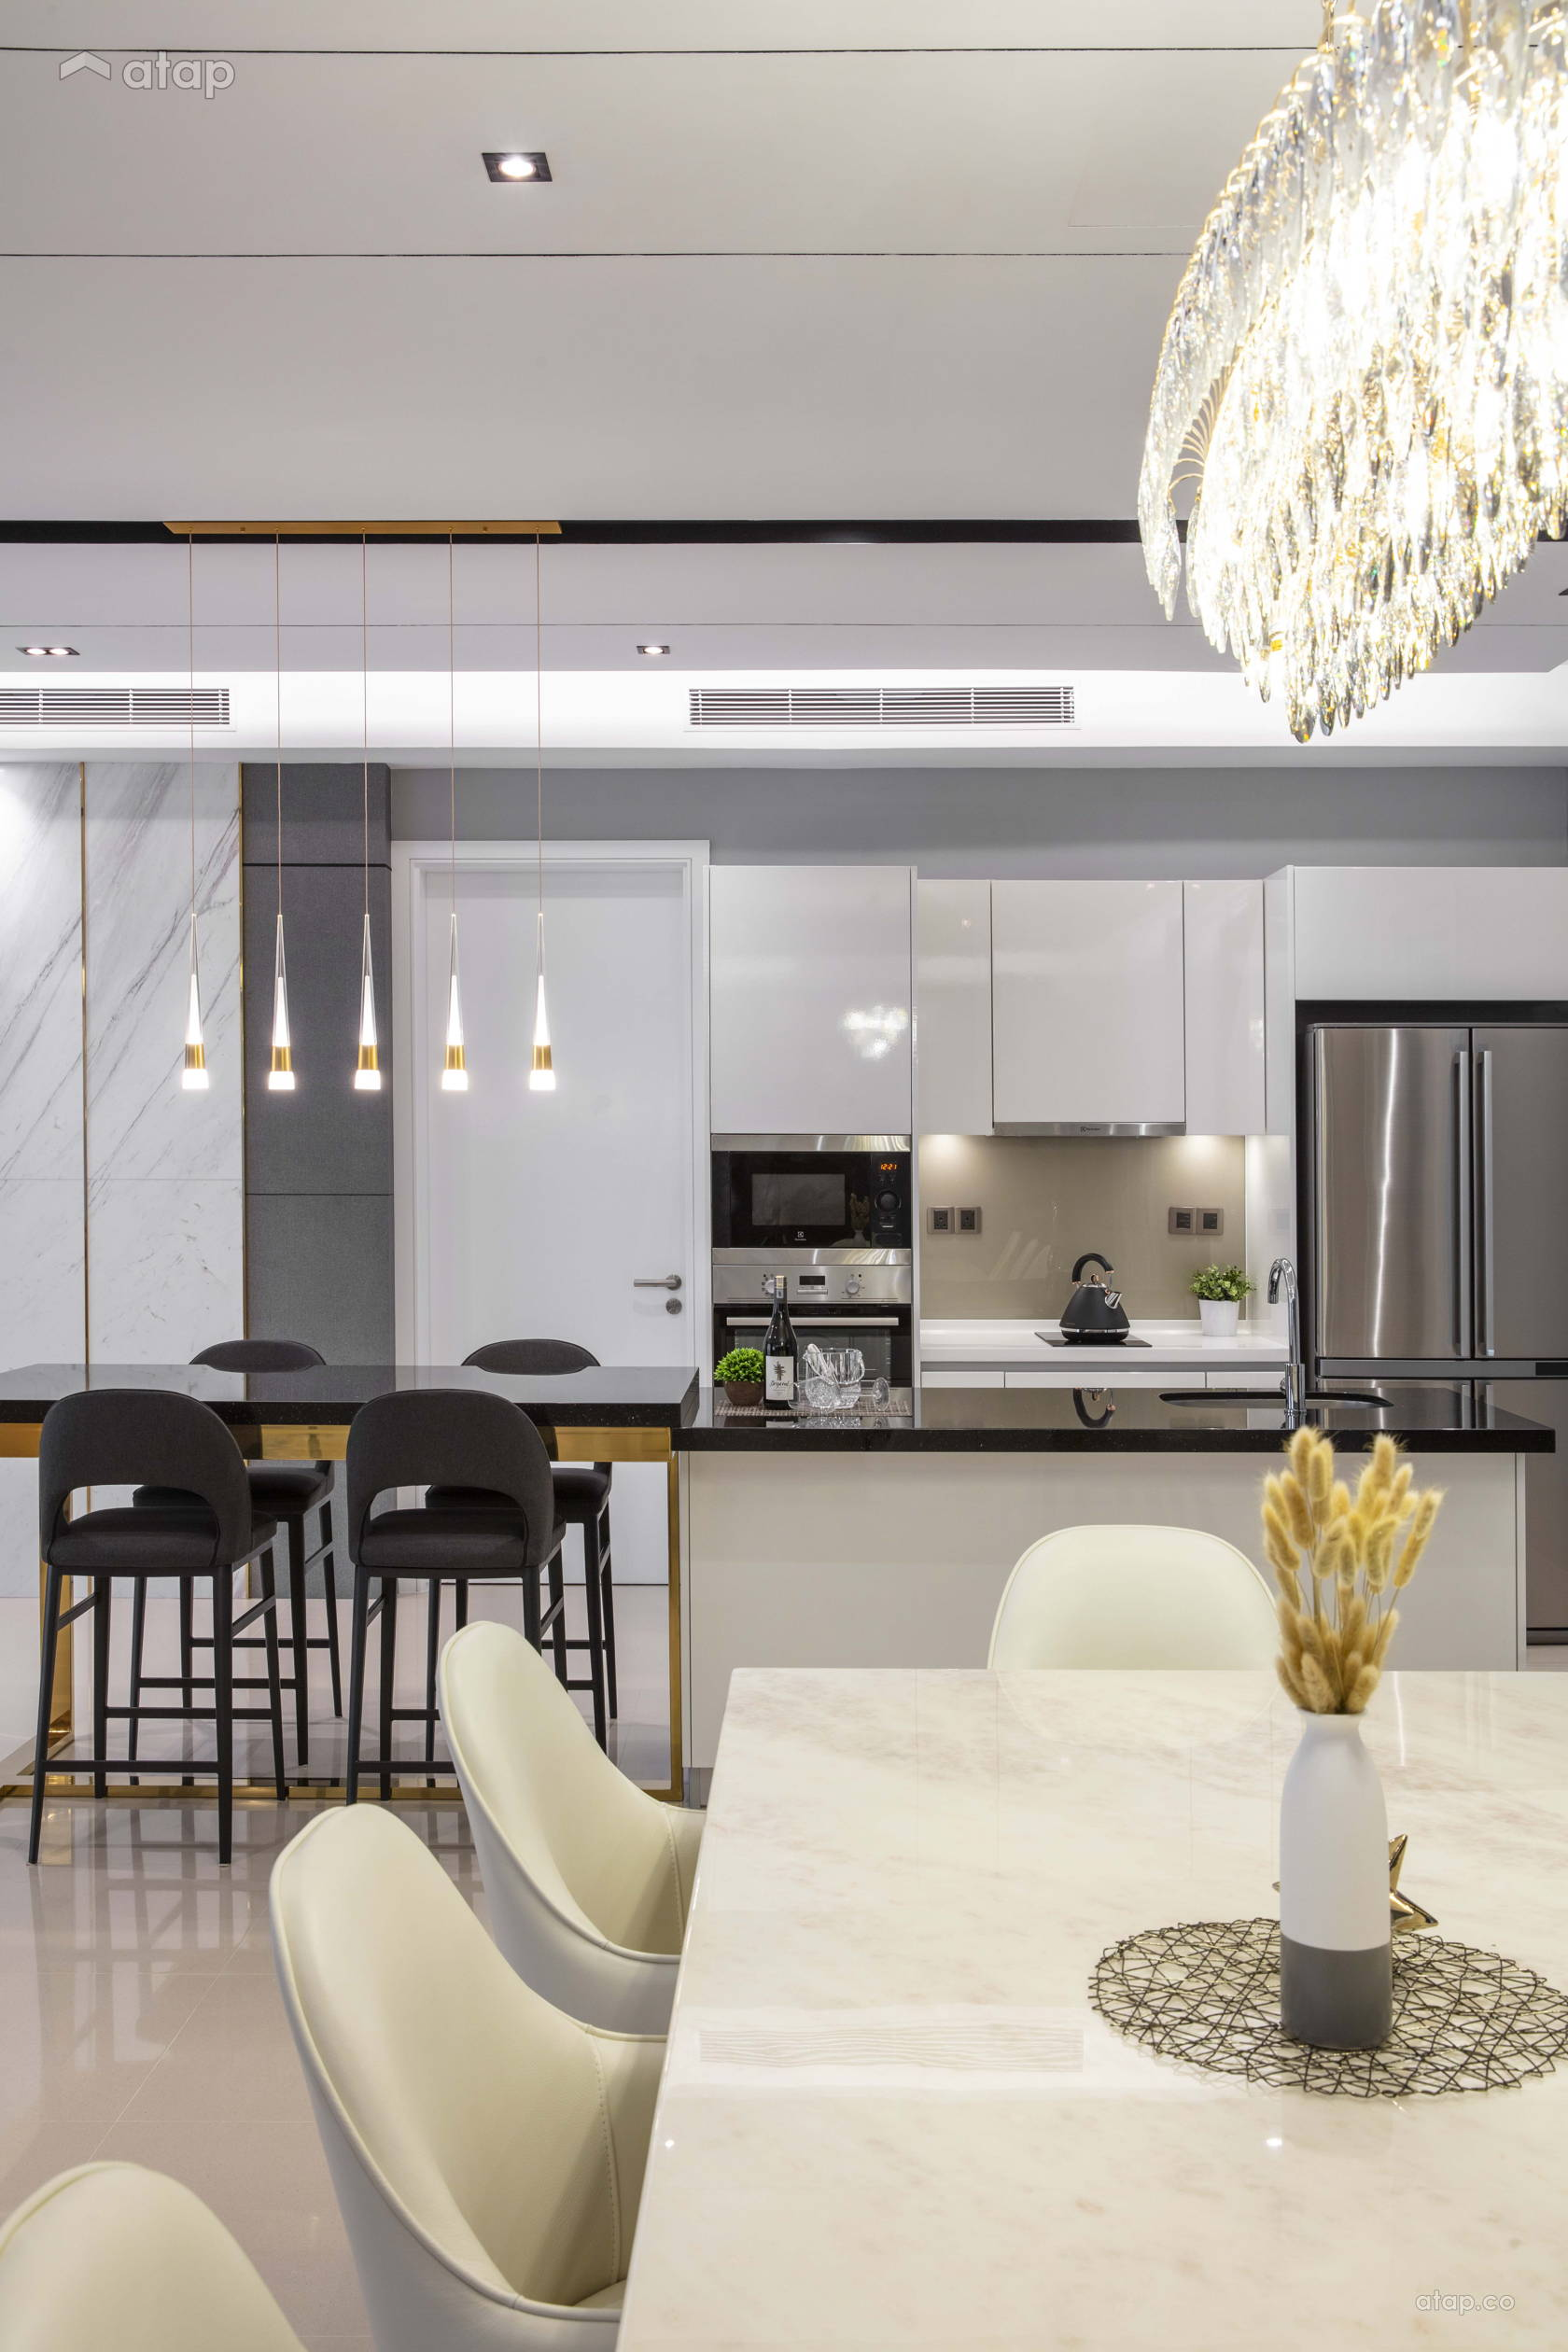 Contemporary Modern Dining Room Kitchen @ ELEGANT GLAM - Pavilion Hilltop Mont Kiara